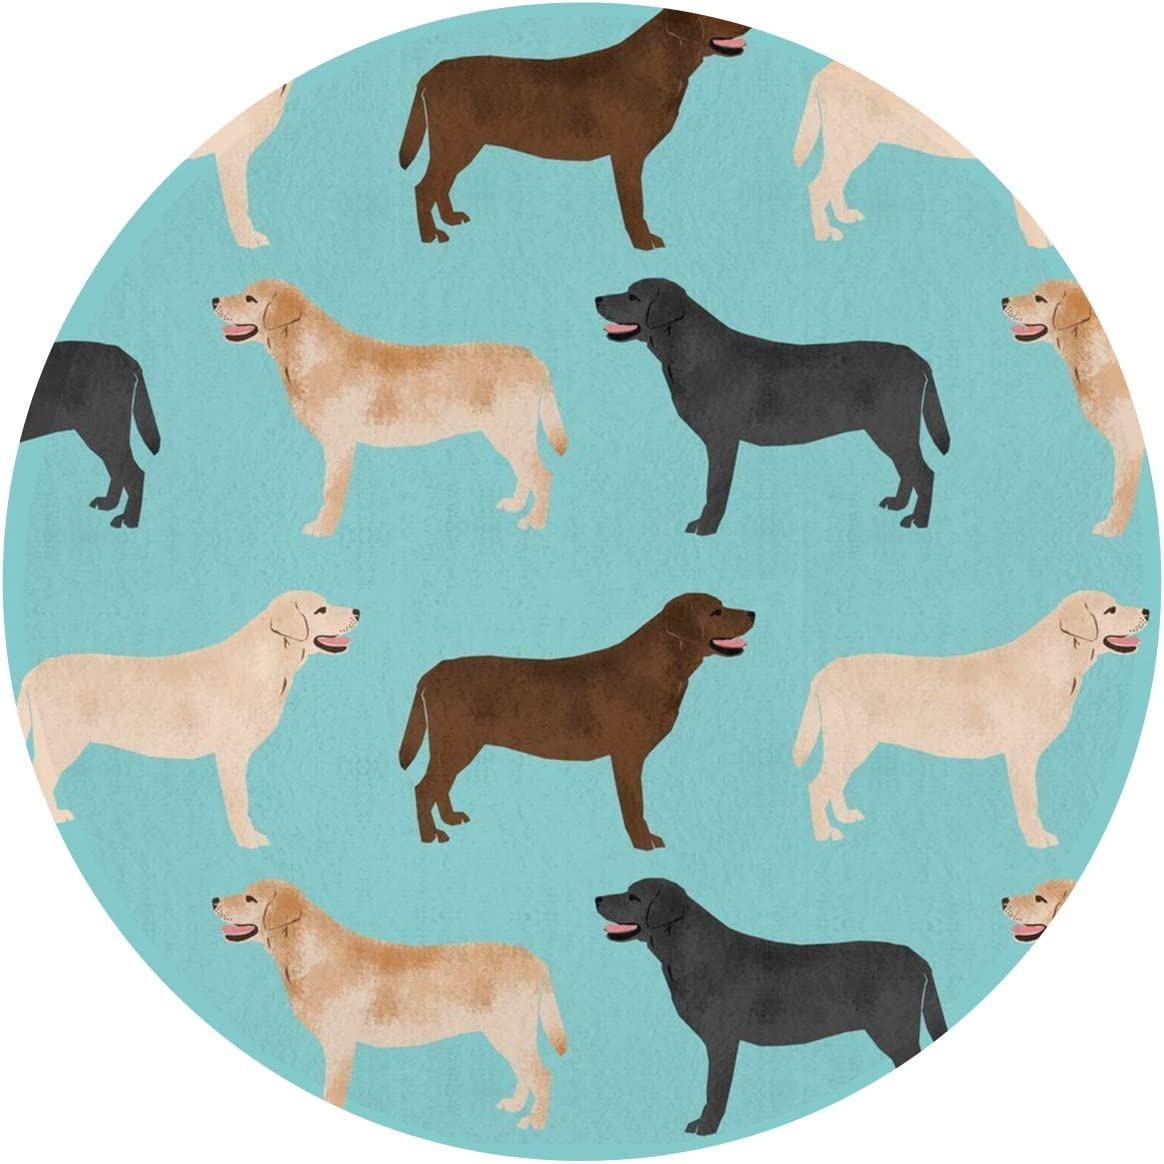 Soft Flannel Doormats Non-Slip Circle Art Mats – Modern Fashion Cute Labradors Yellow Chocolate Black Lab Pet Dogs Round Mat, Baby Kids Protector Playing Rug Carpet, 24 Inches Bath Rug Carpet